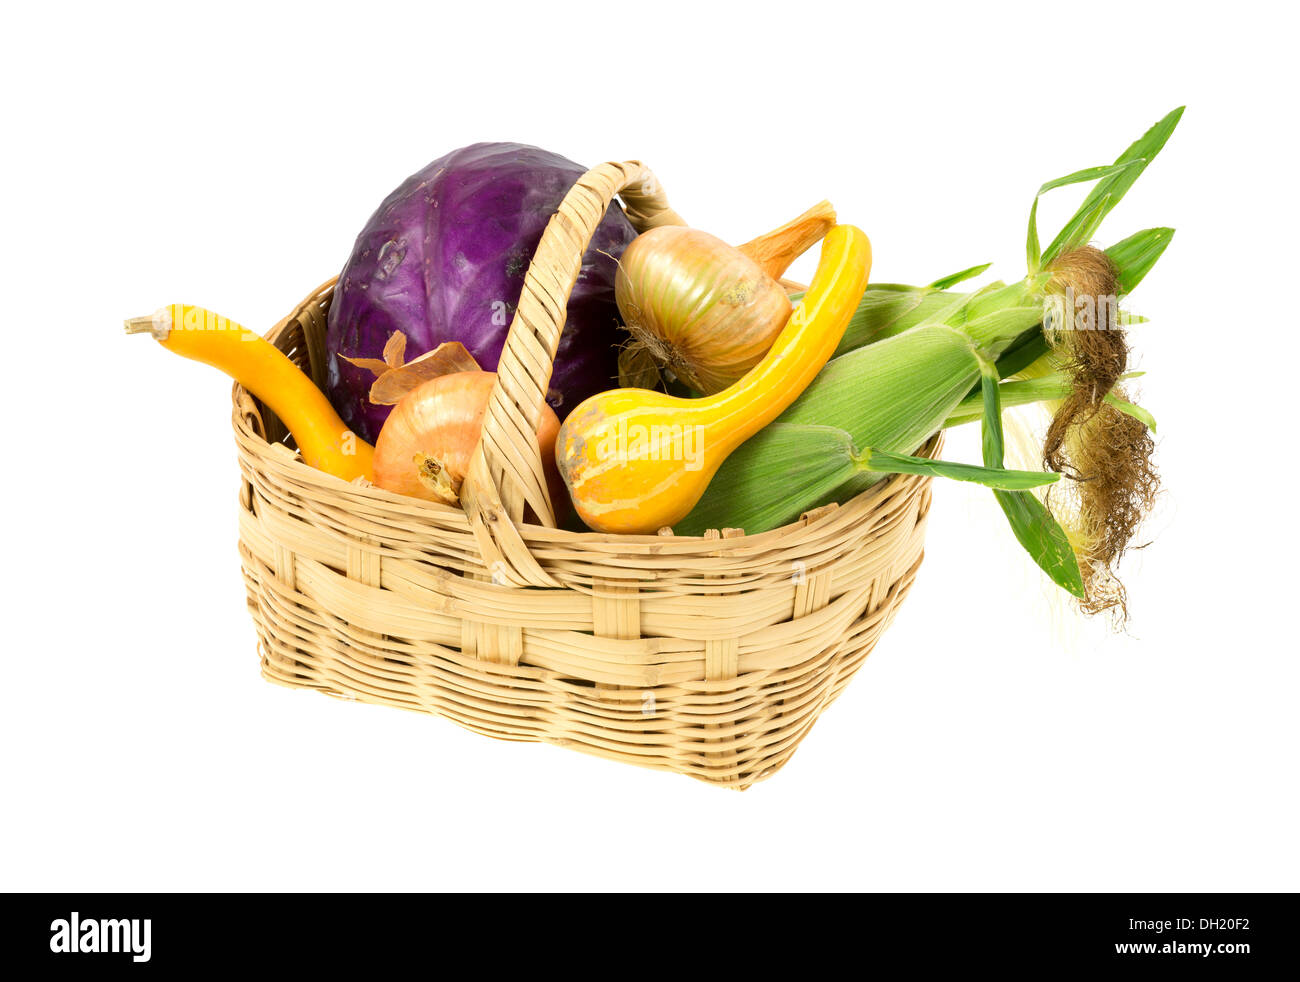 A large wicker basket filled with freshly picked assorted garden vegetables on a white background. Stock Photo